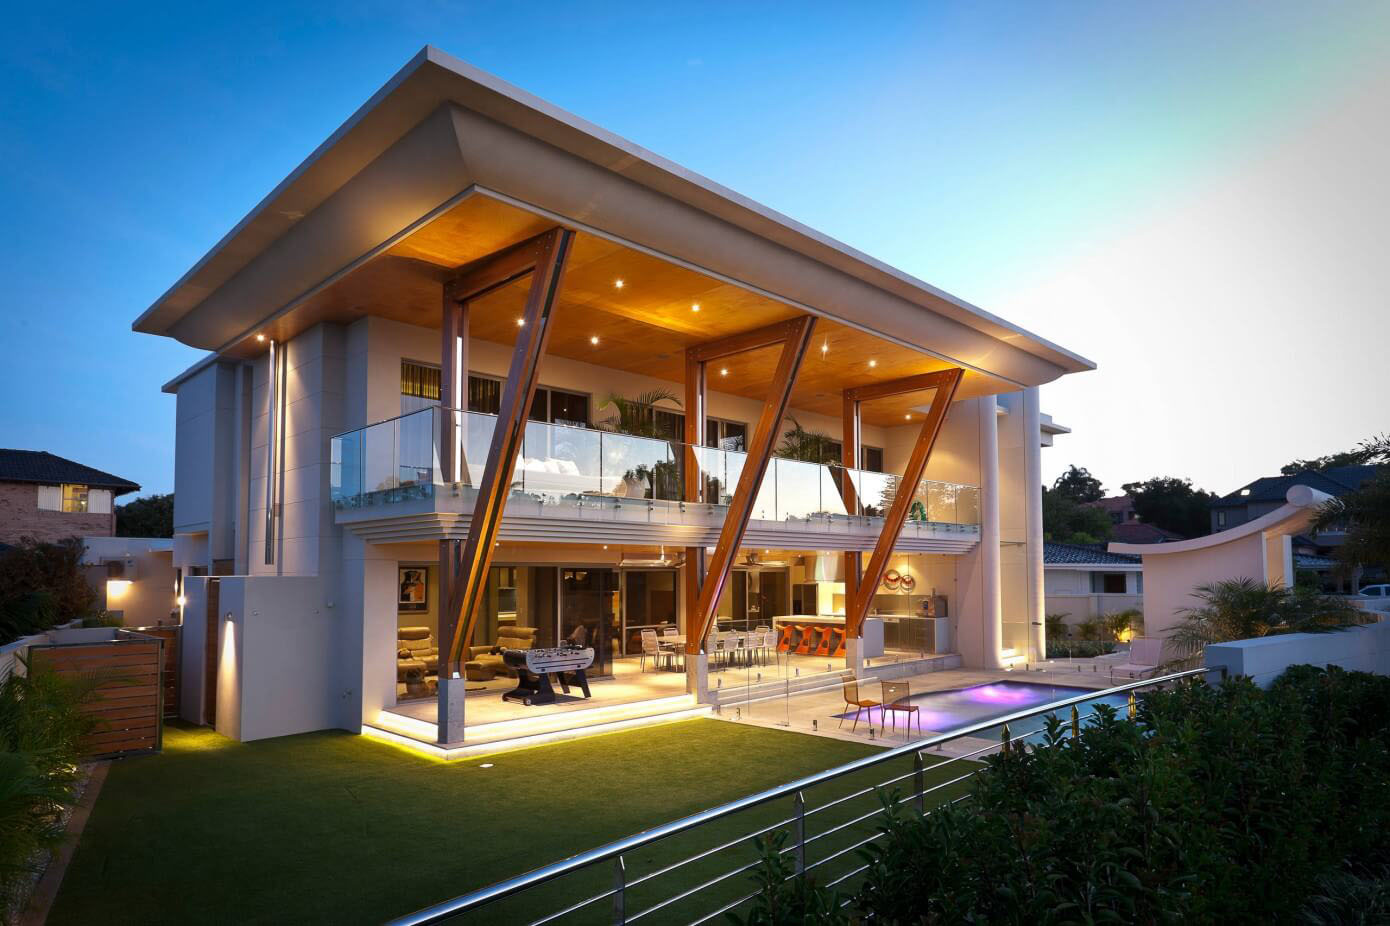 Ultra Modern Family Home With Sleek Design